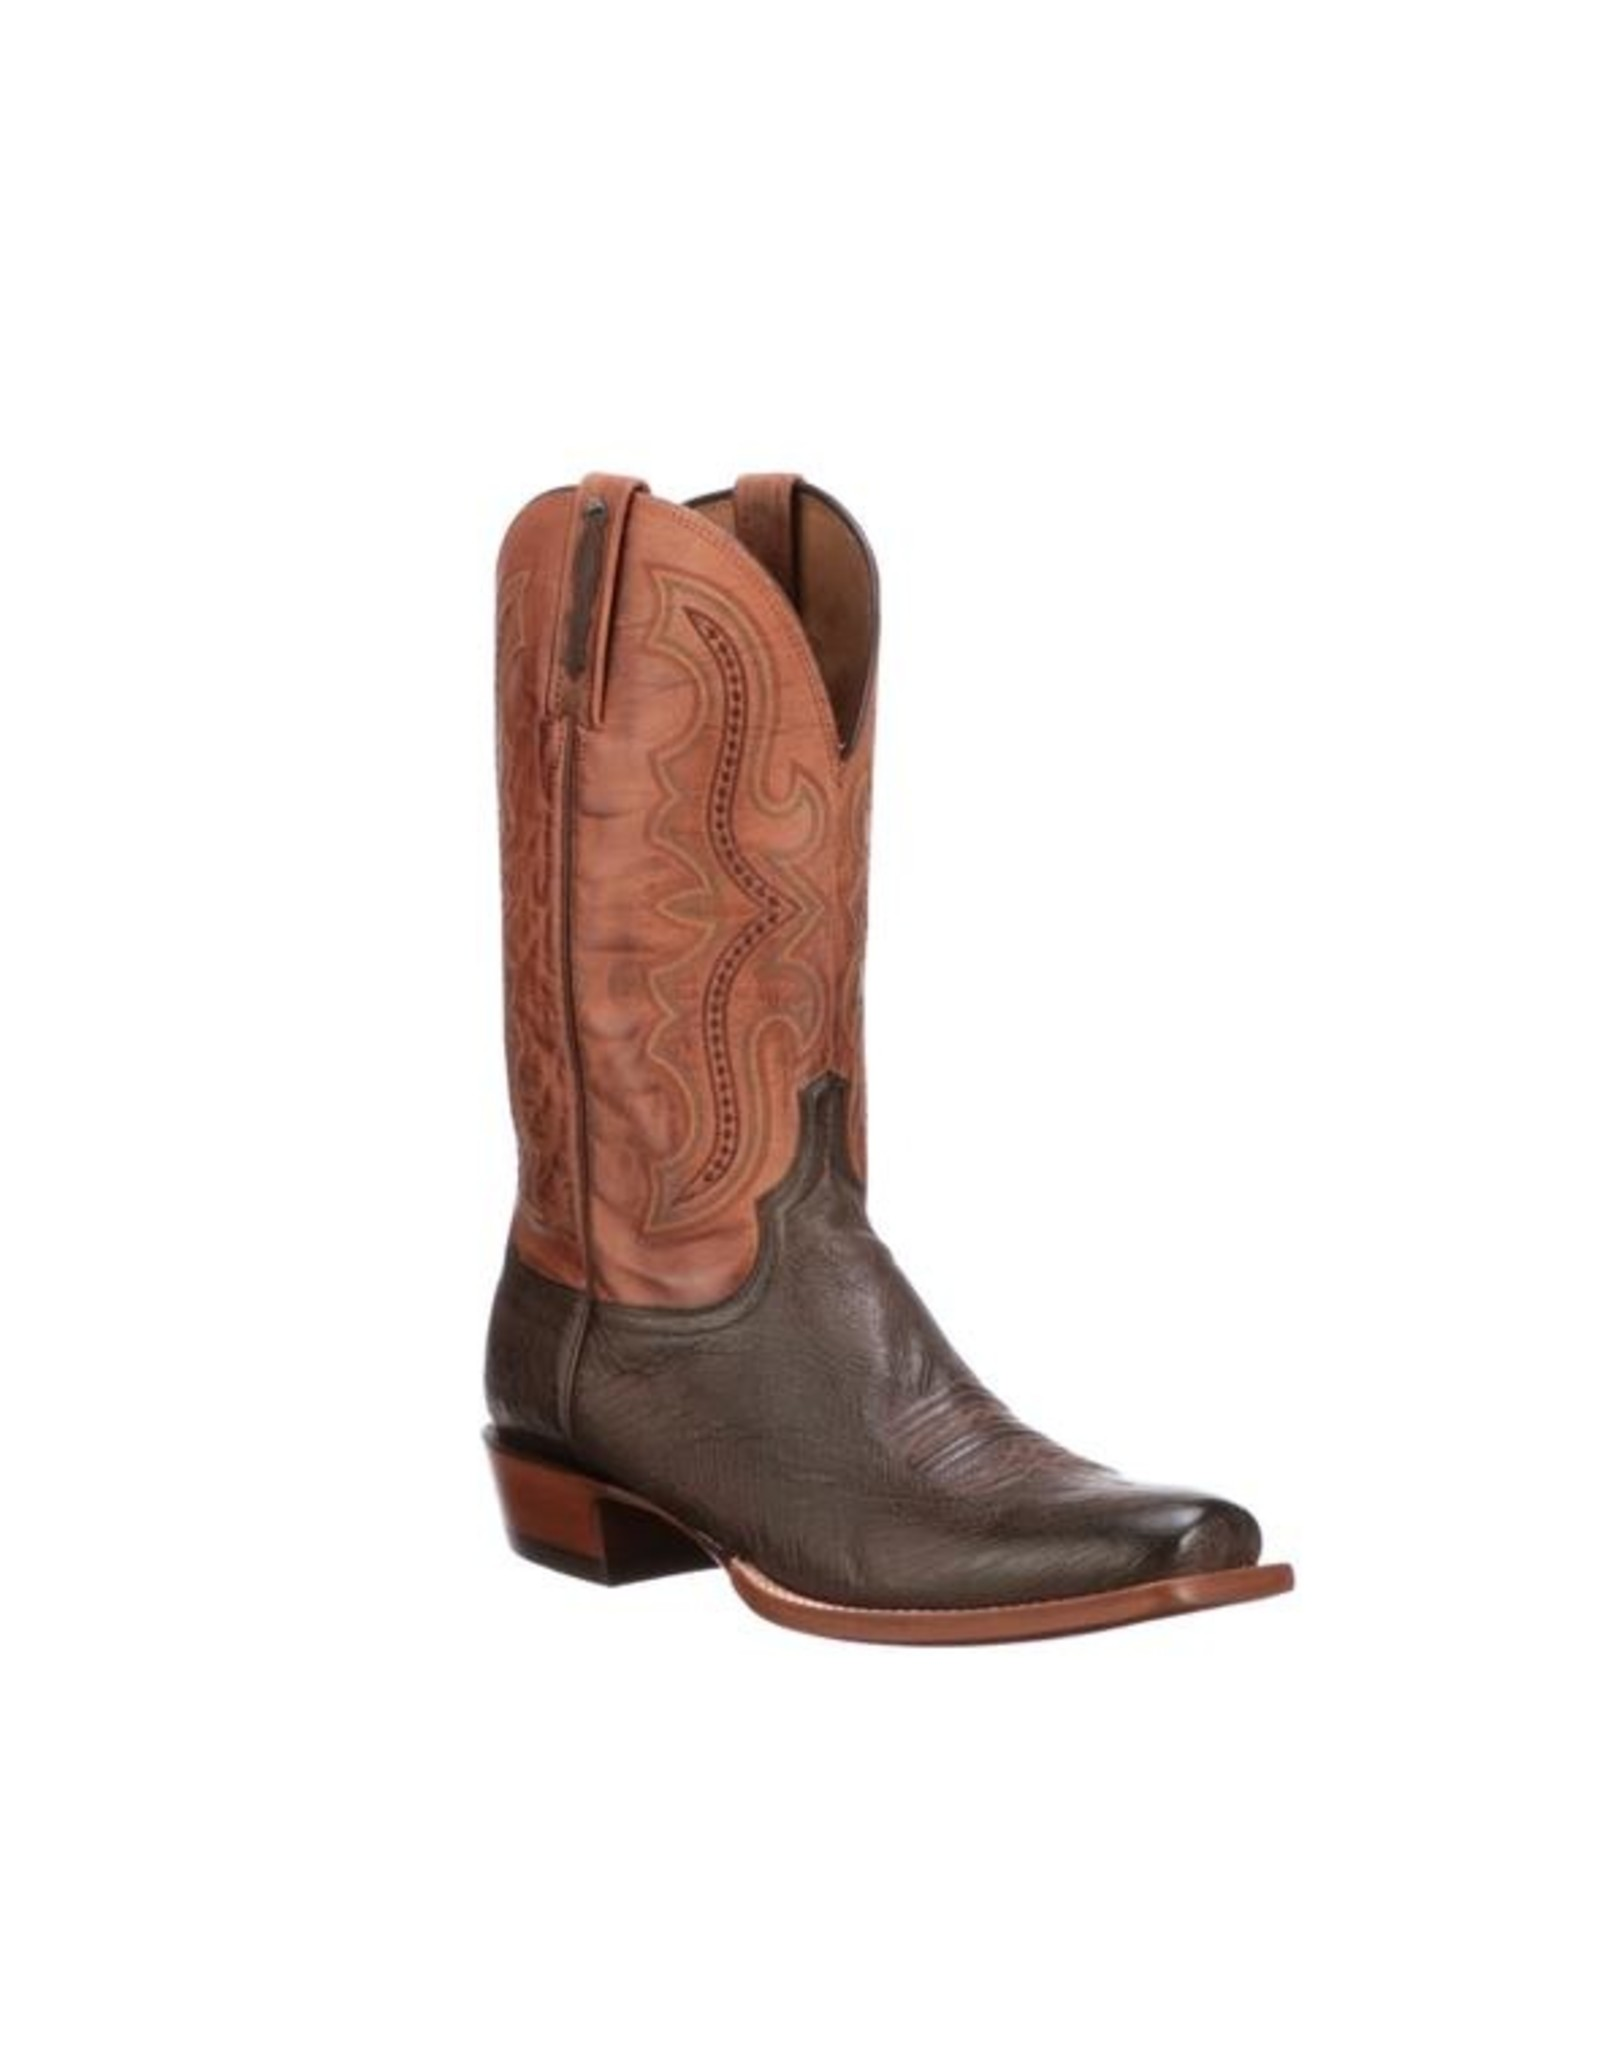 Boots-Men LUCCHESE CL1094.Q8 Cecil